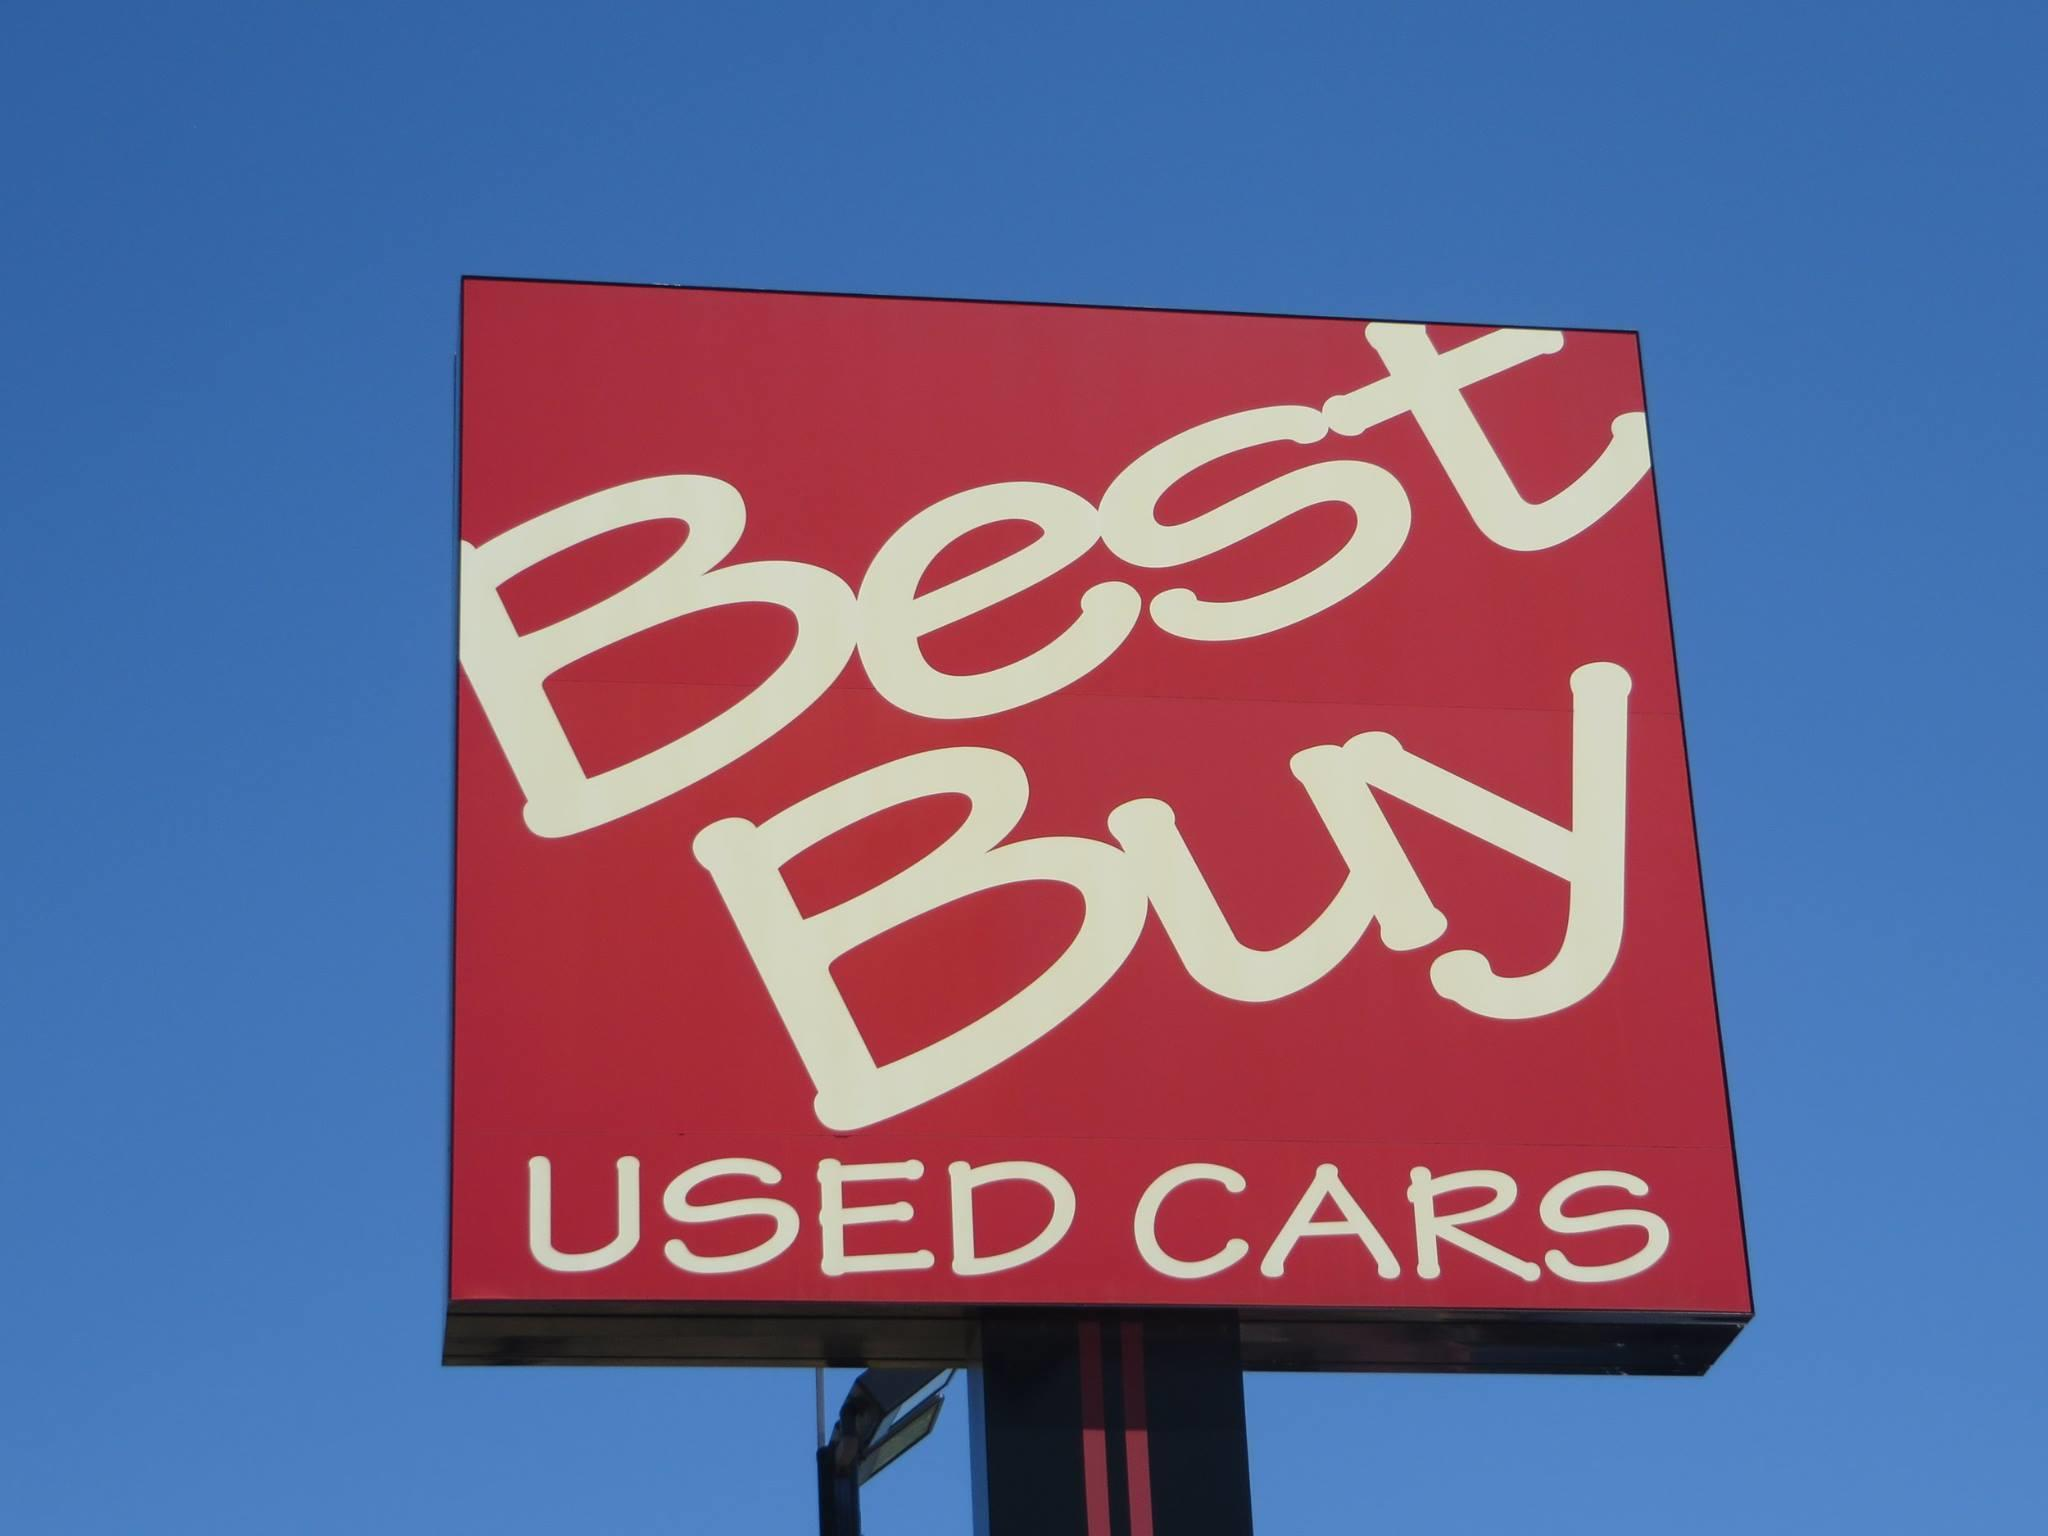 best buy used cars coupons near me in grand rapids 8coupons. Black Bedroom Furniture Sets. Home Design Ideas